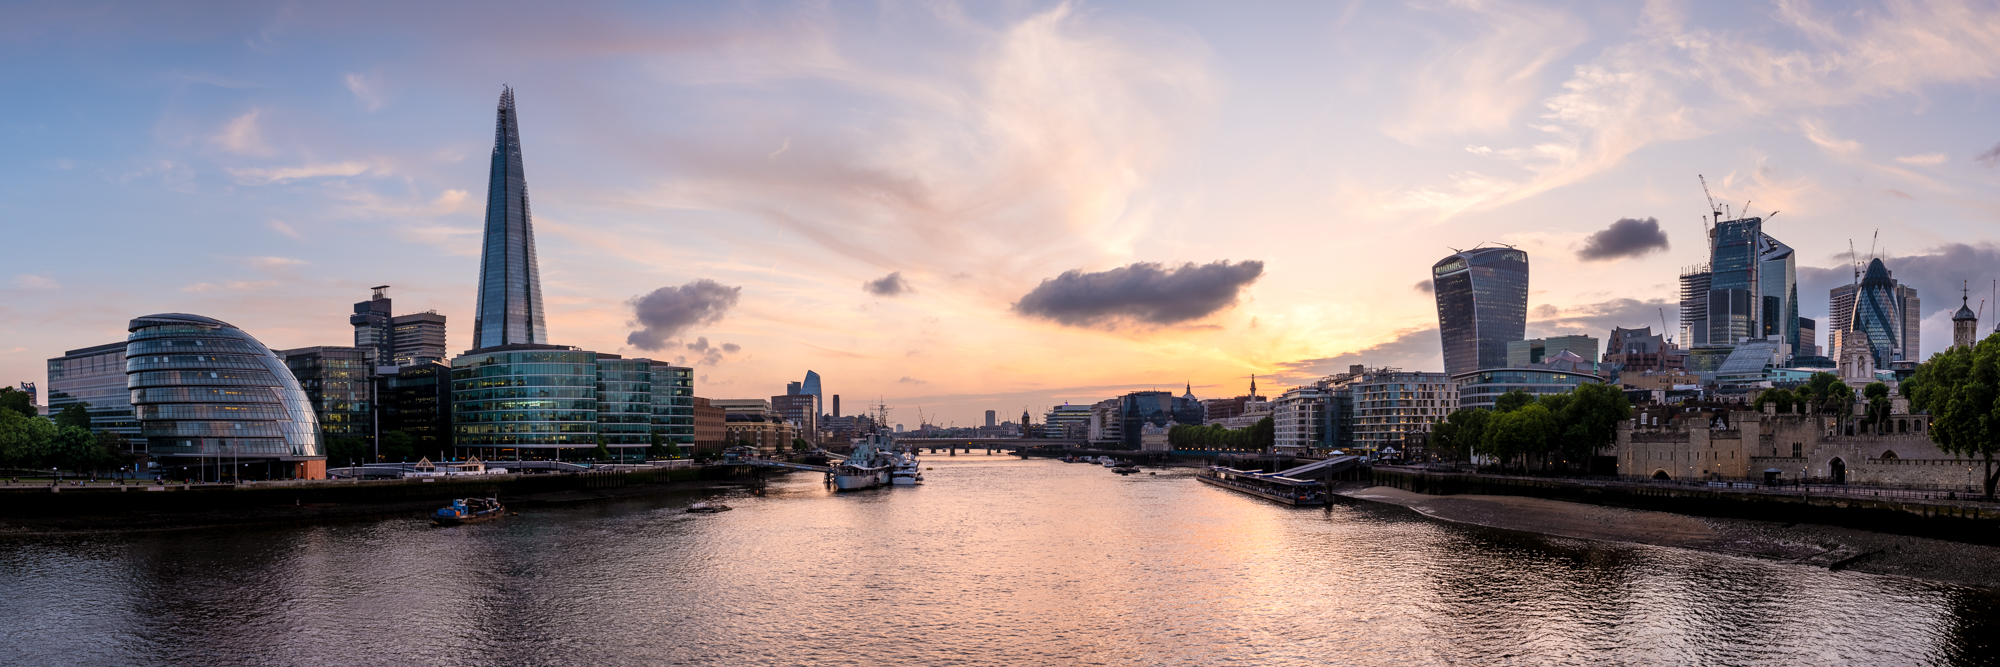 A London Panoramic at Sunset - The Shard by Trevor Sherwin